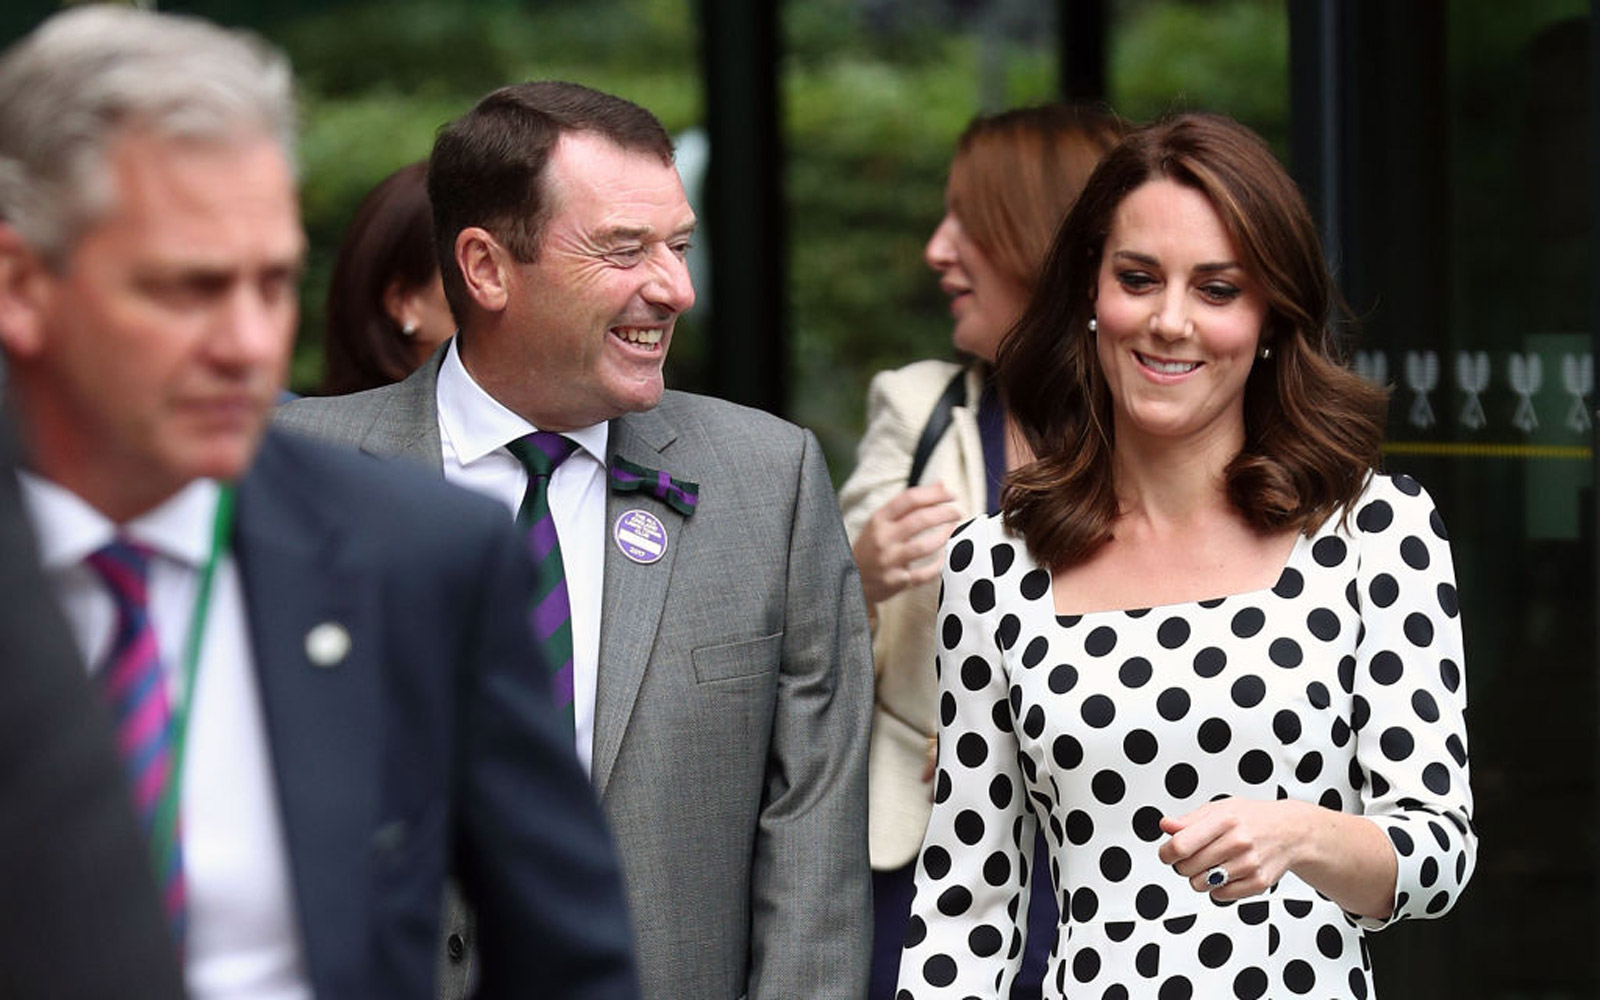 Philip Brook Chairman of the All England Lawn Tennis Club chats with Britain's Catherine, Duchess of Cambridge (R) as she visits The All England Lawn Tennis Club in Wimbledon, south-west London, on July 3, 2017 on the first day of the 2017 Wimbledon Champ